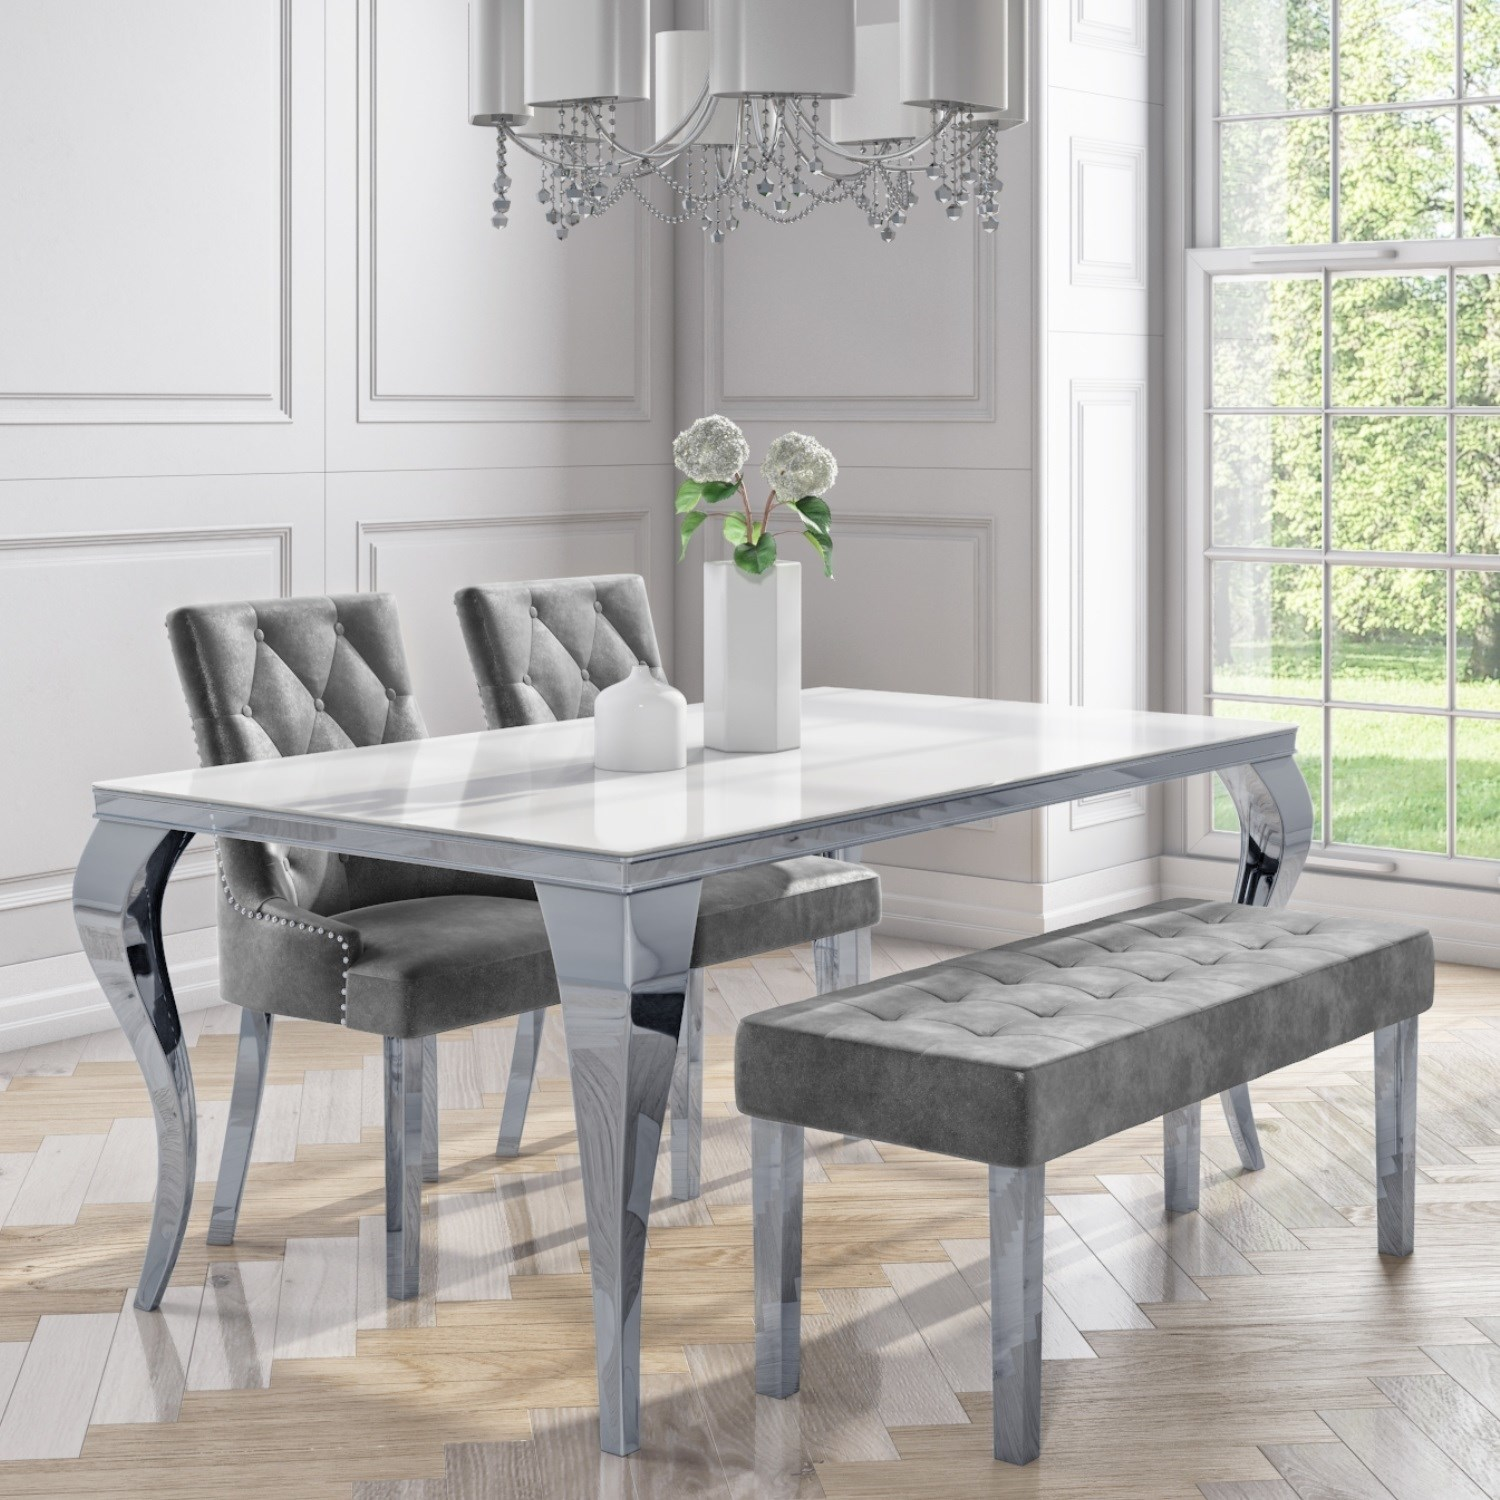 White Mirrored Dining Table With 2 Chairs In Grey Velvet 1 Bench Louis Furniture123